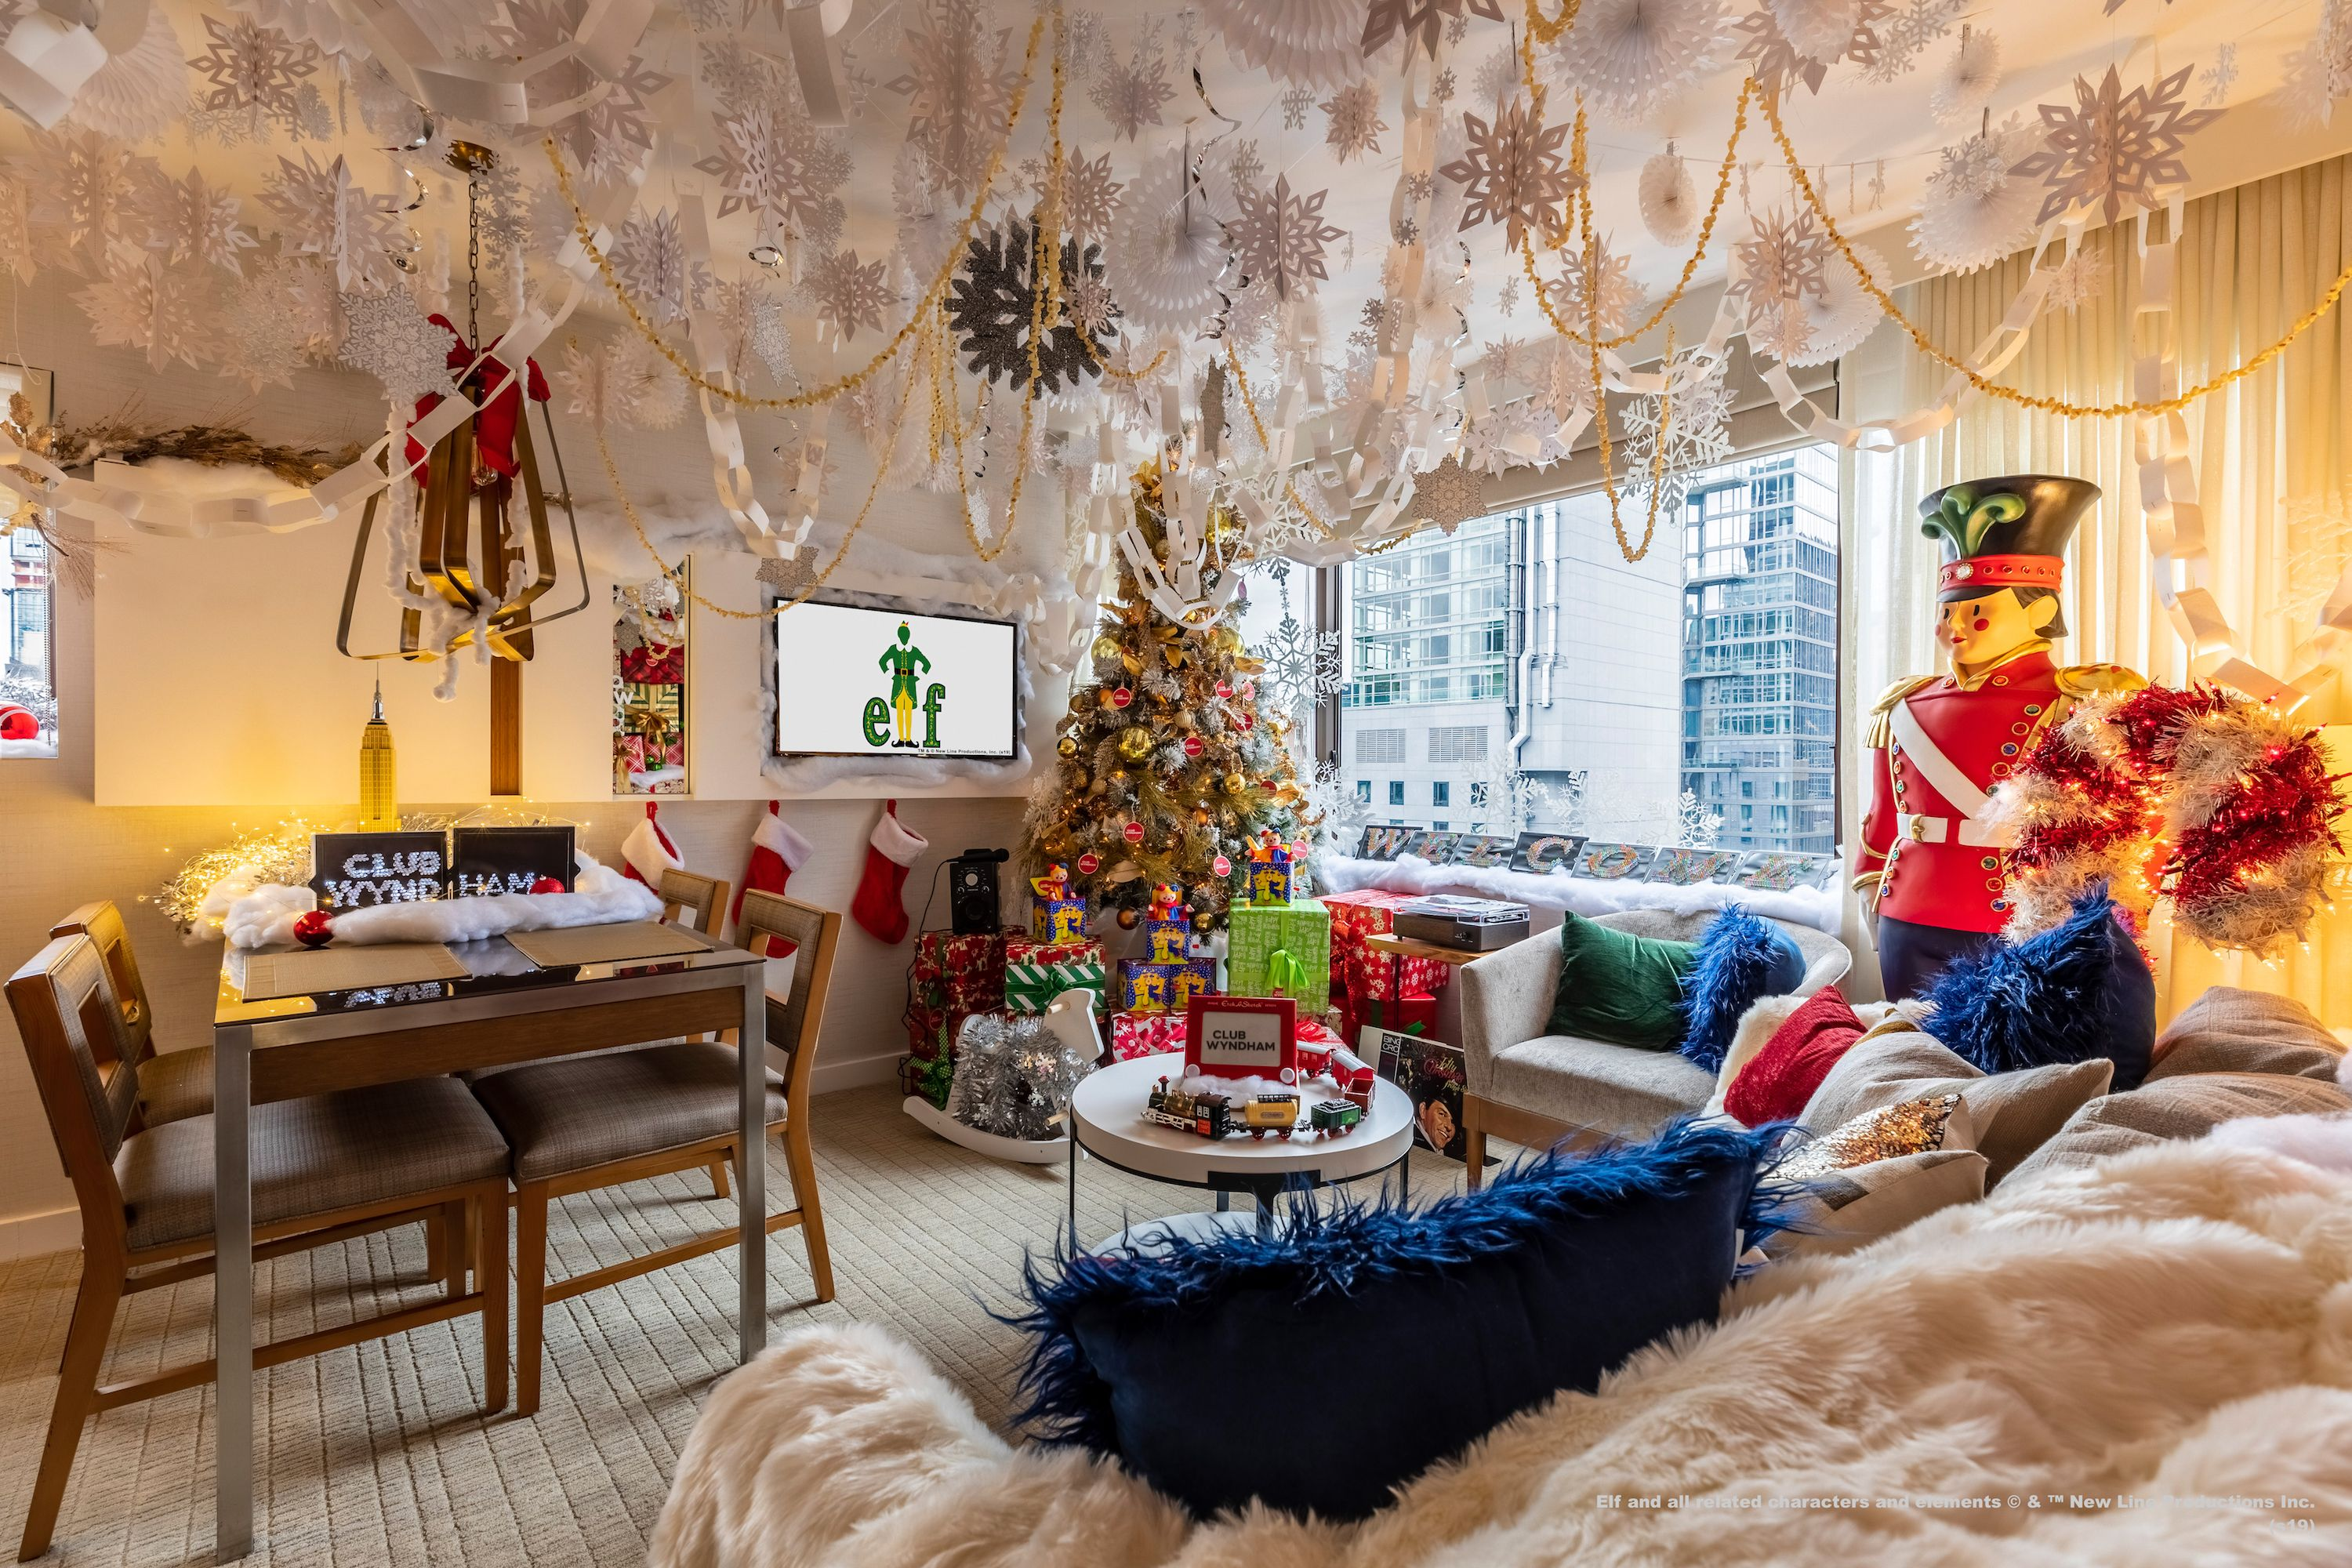 This Elf-Inspired Suite Includes A Fully Stocked Candy Kitchen And Literally All The Christmas Decorations